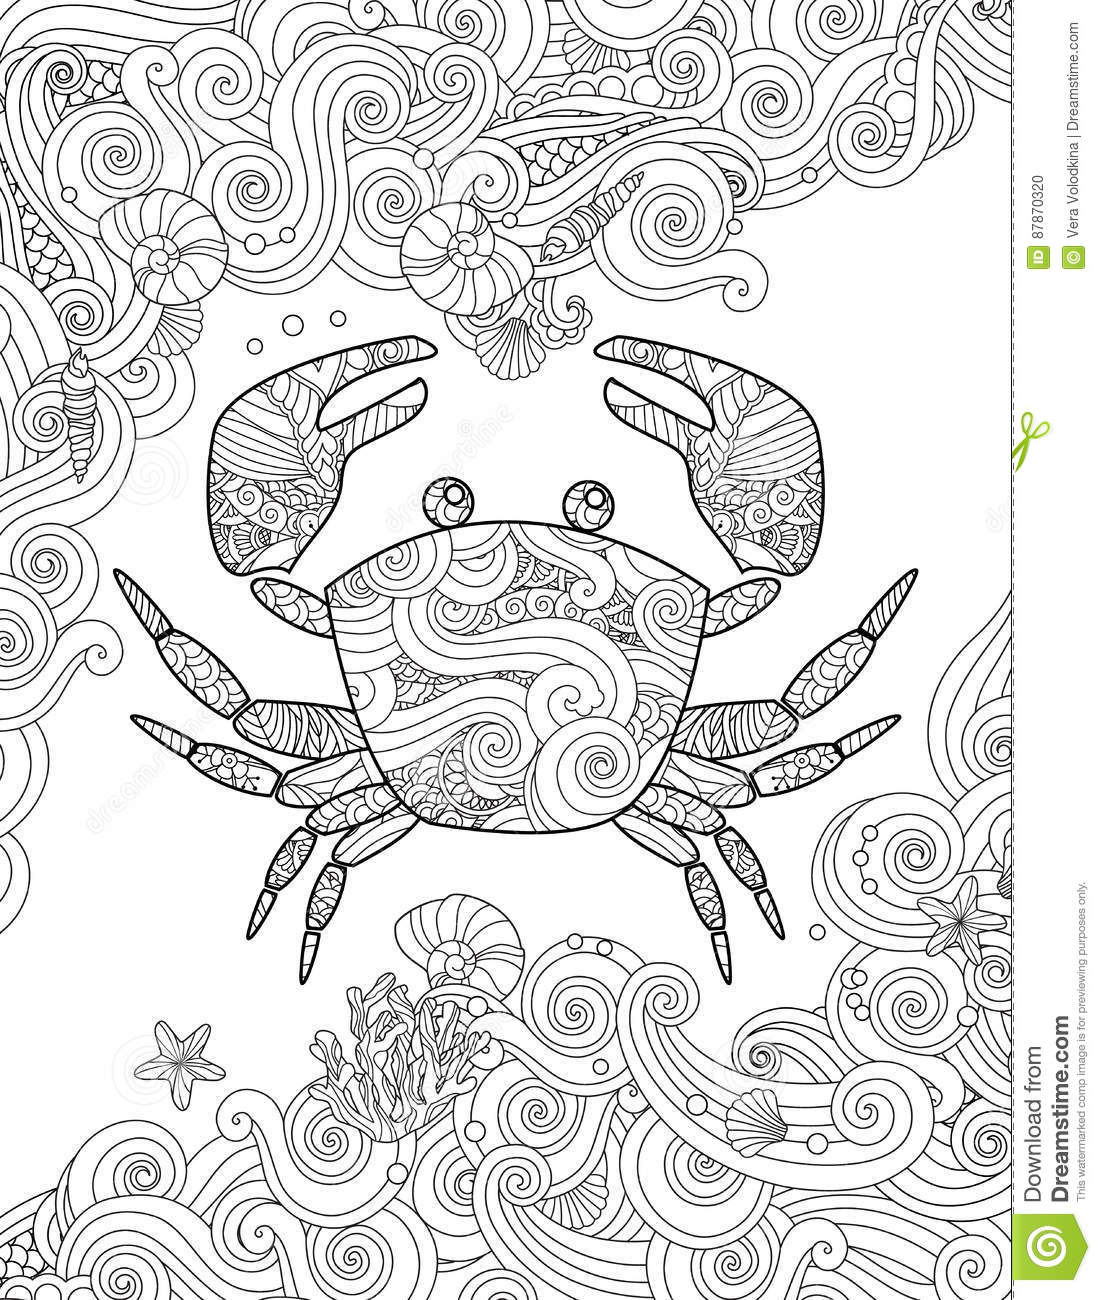 Coloring Page Ornate Crab And Sea Waves Vertical